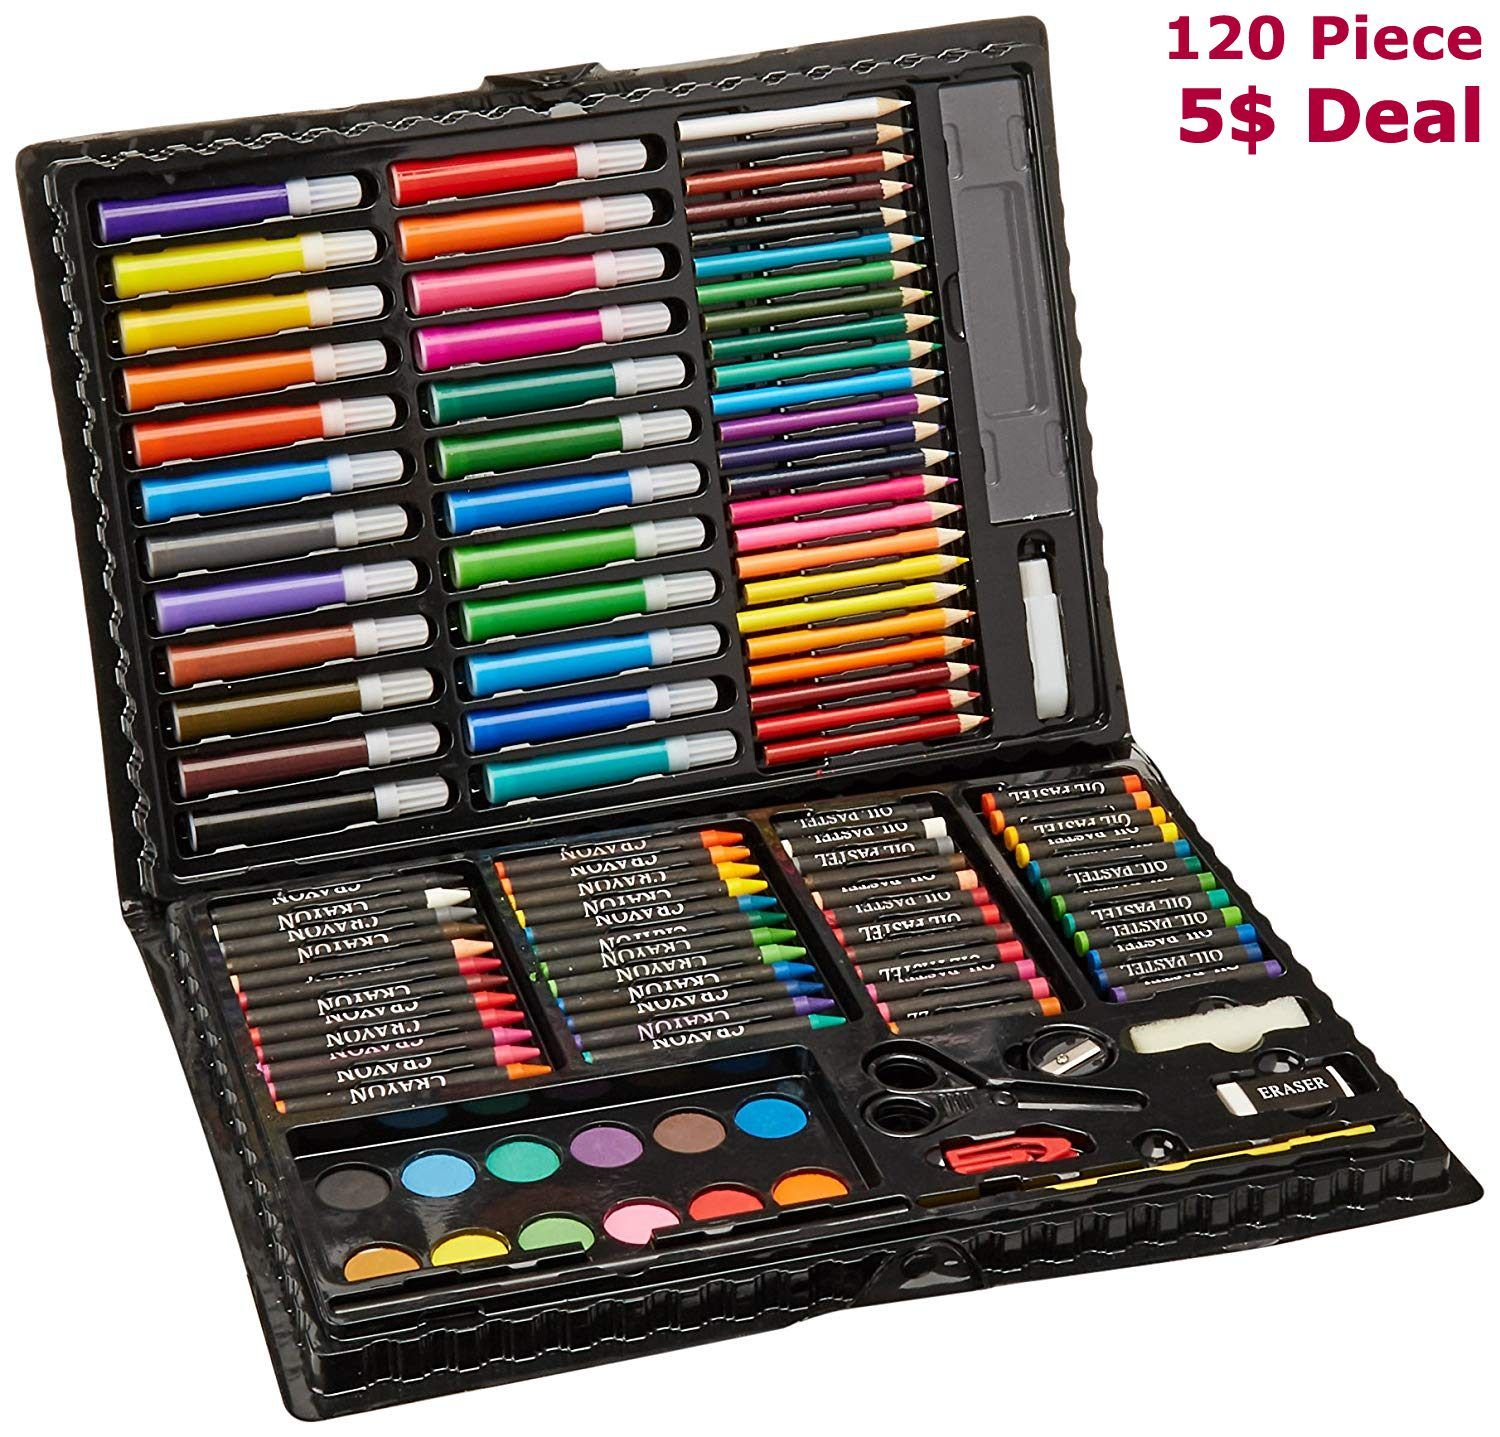 Art Set Art Supplies For Drawing Painting And More In A Compact